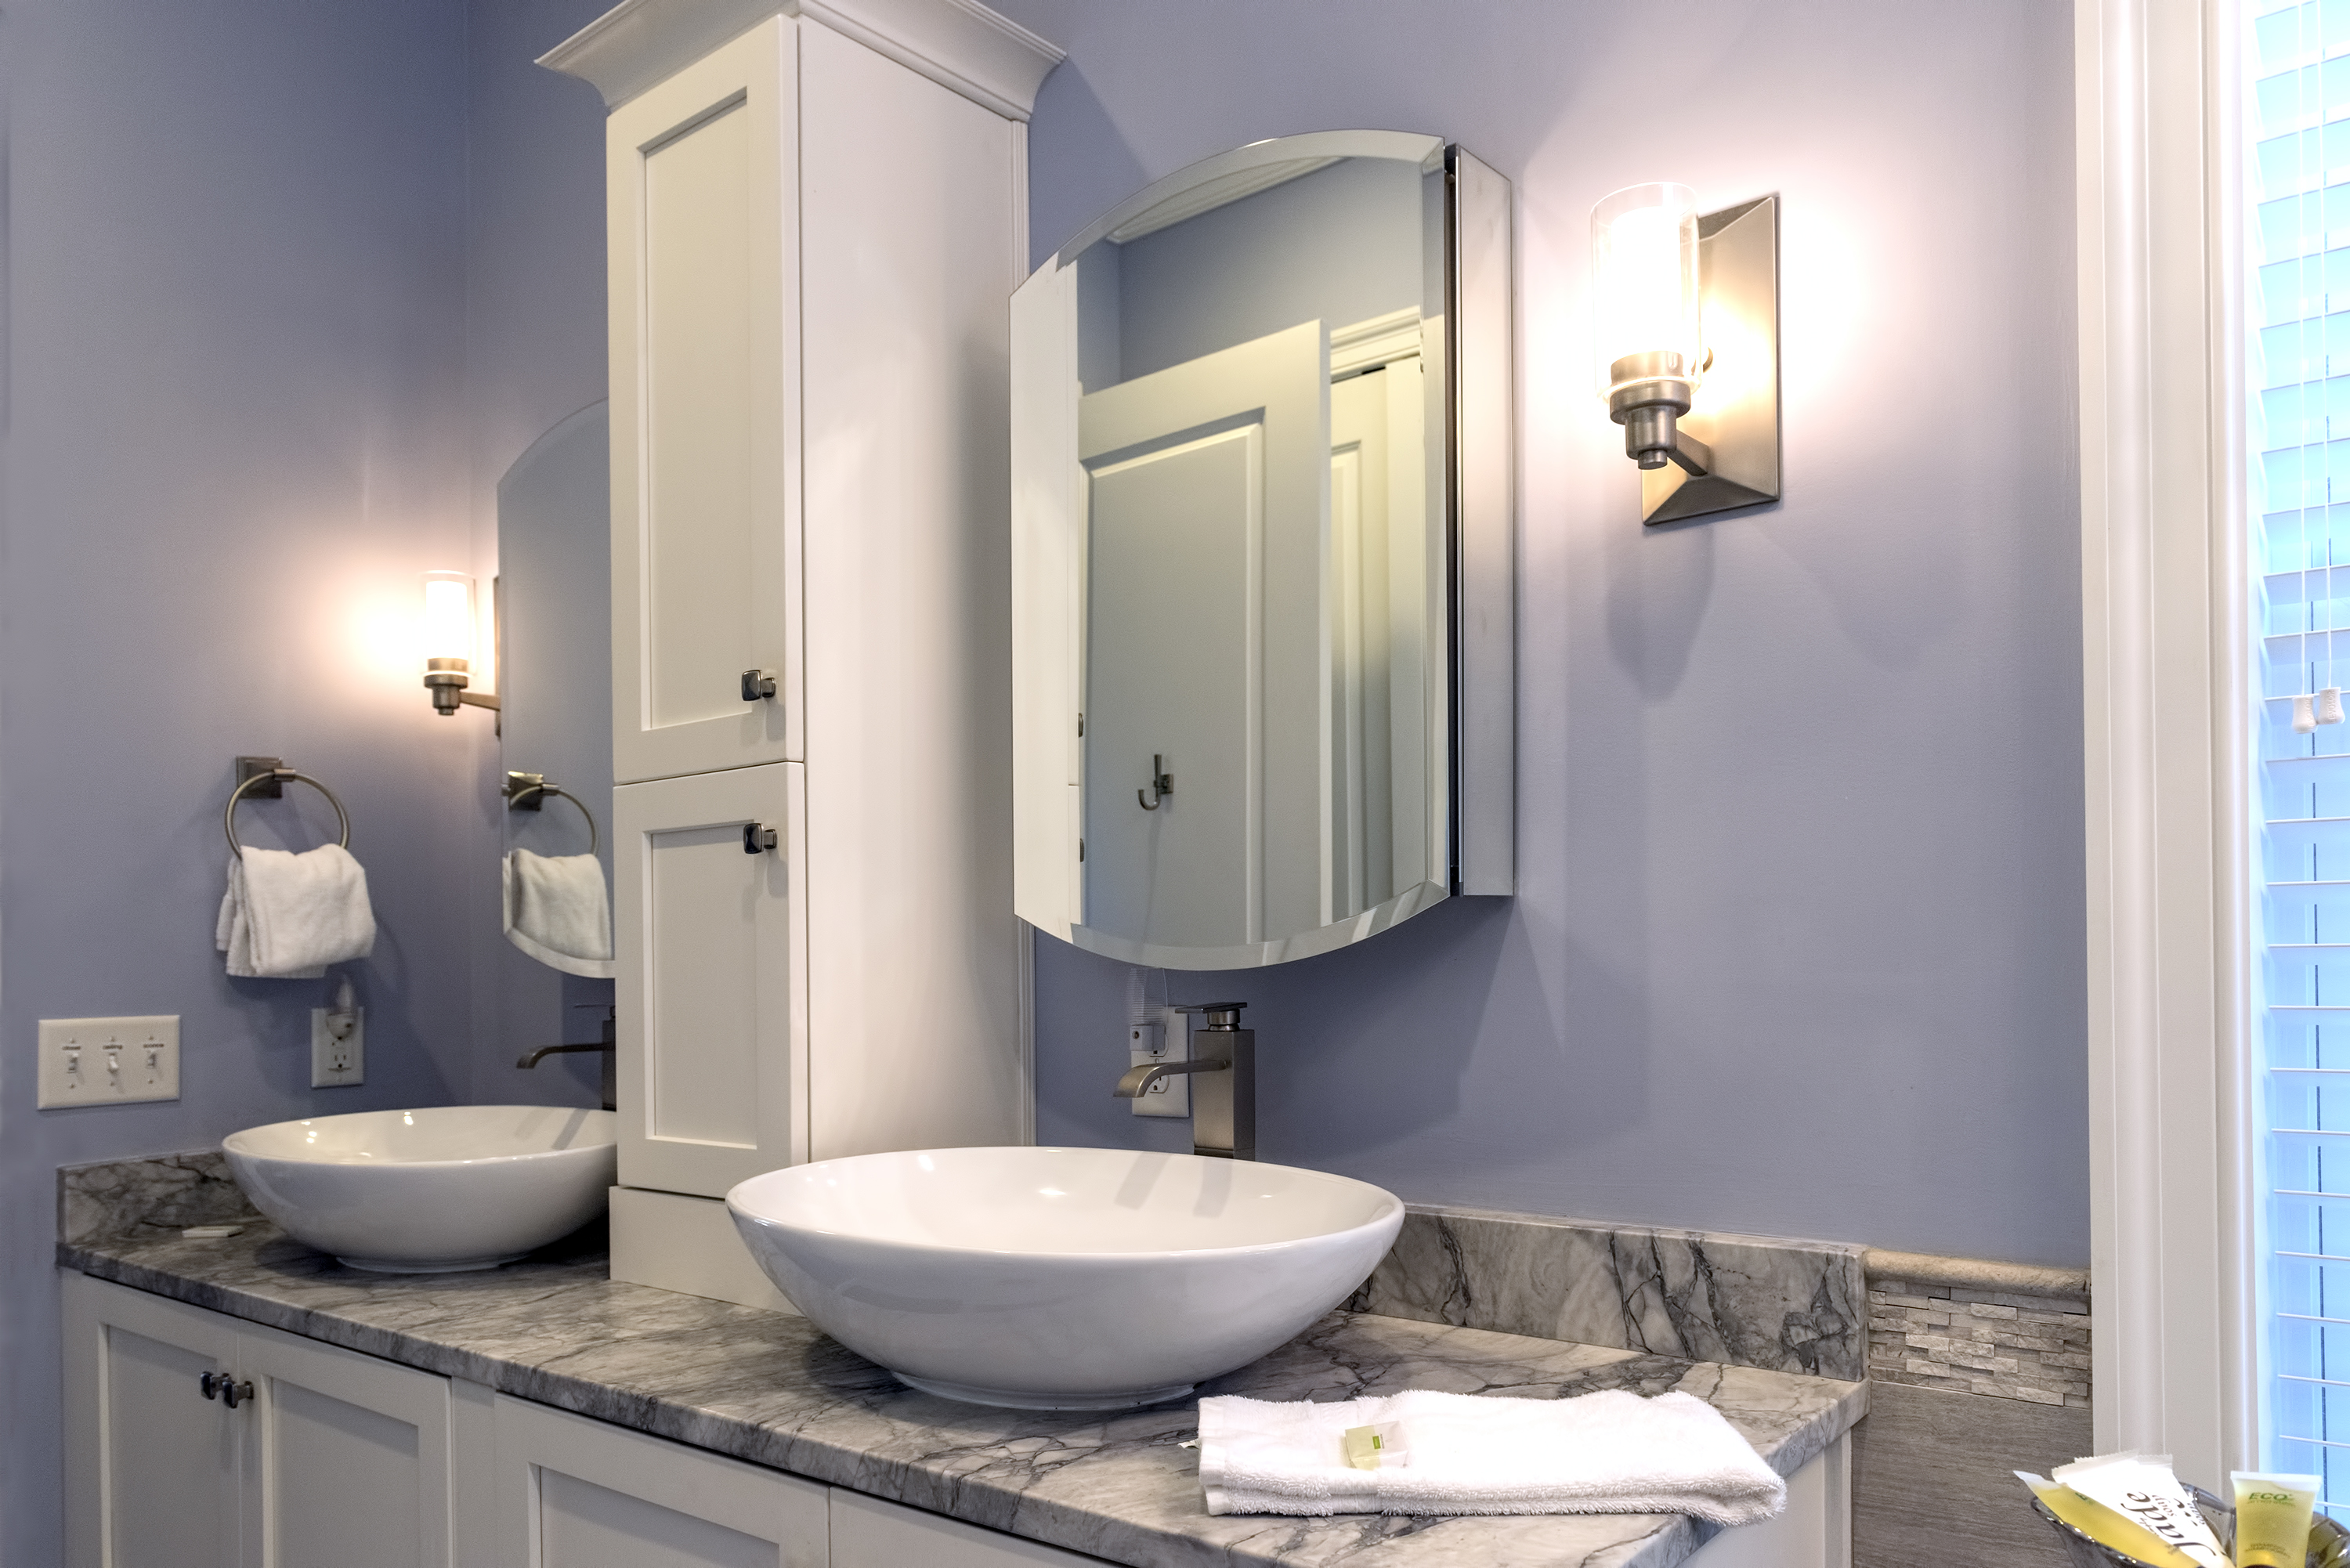 The vanity has two vessel sinks. Just beyond is the large master closet.